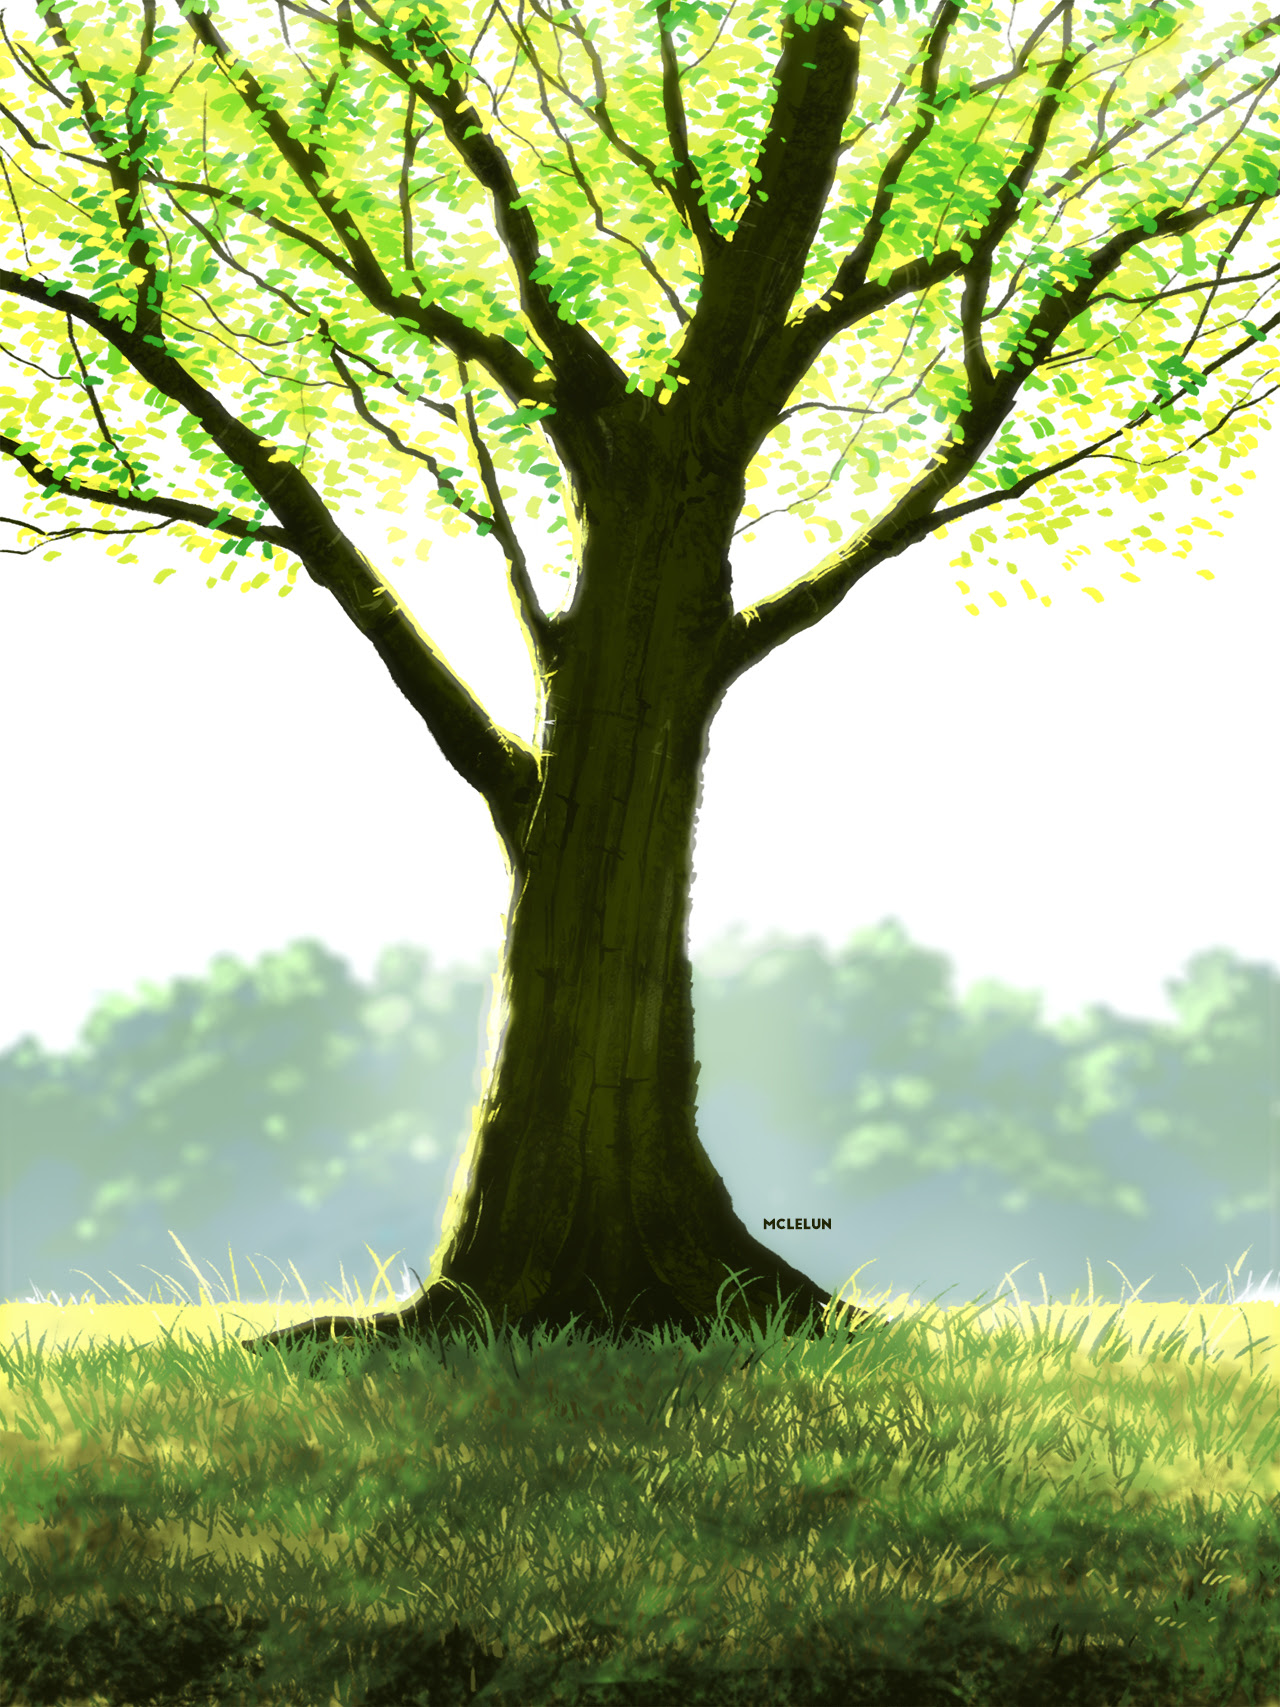 Photoshop default brush tree painting